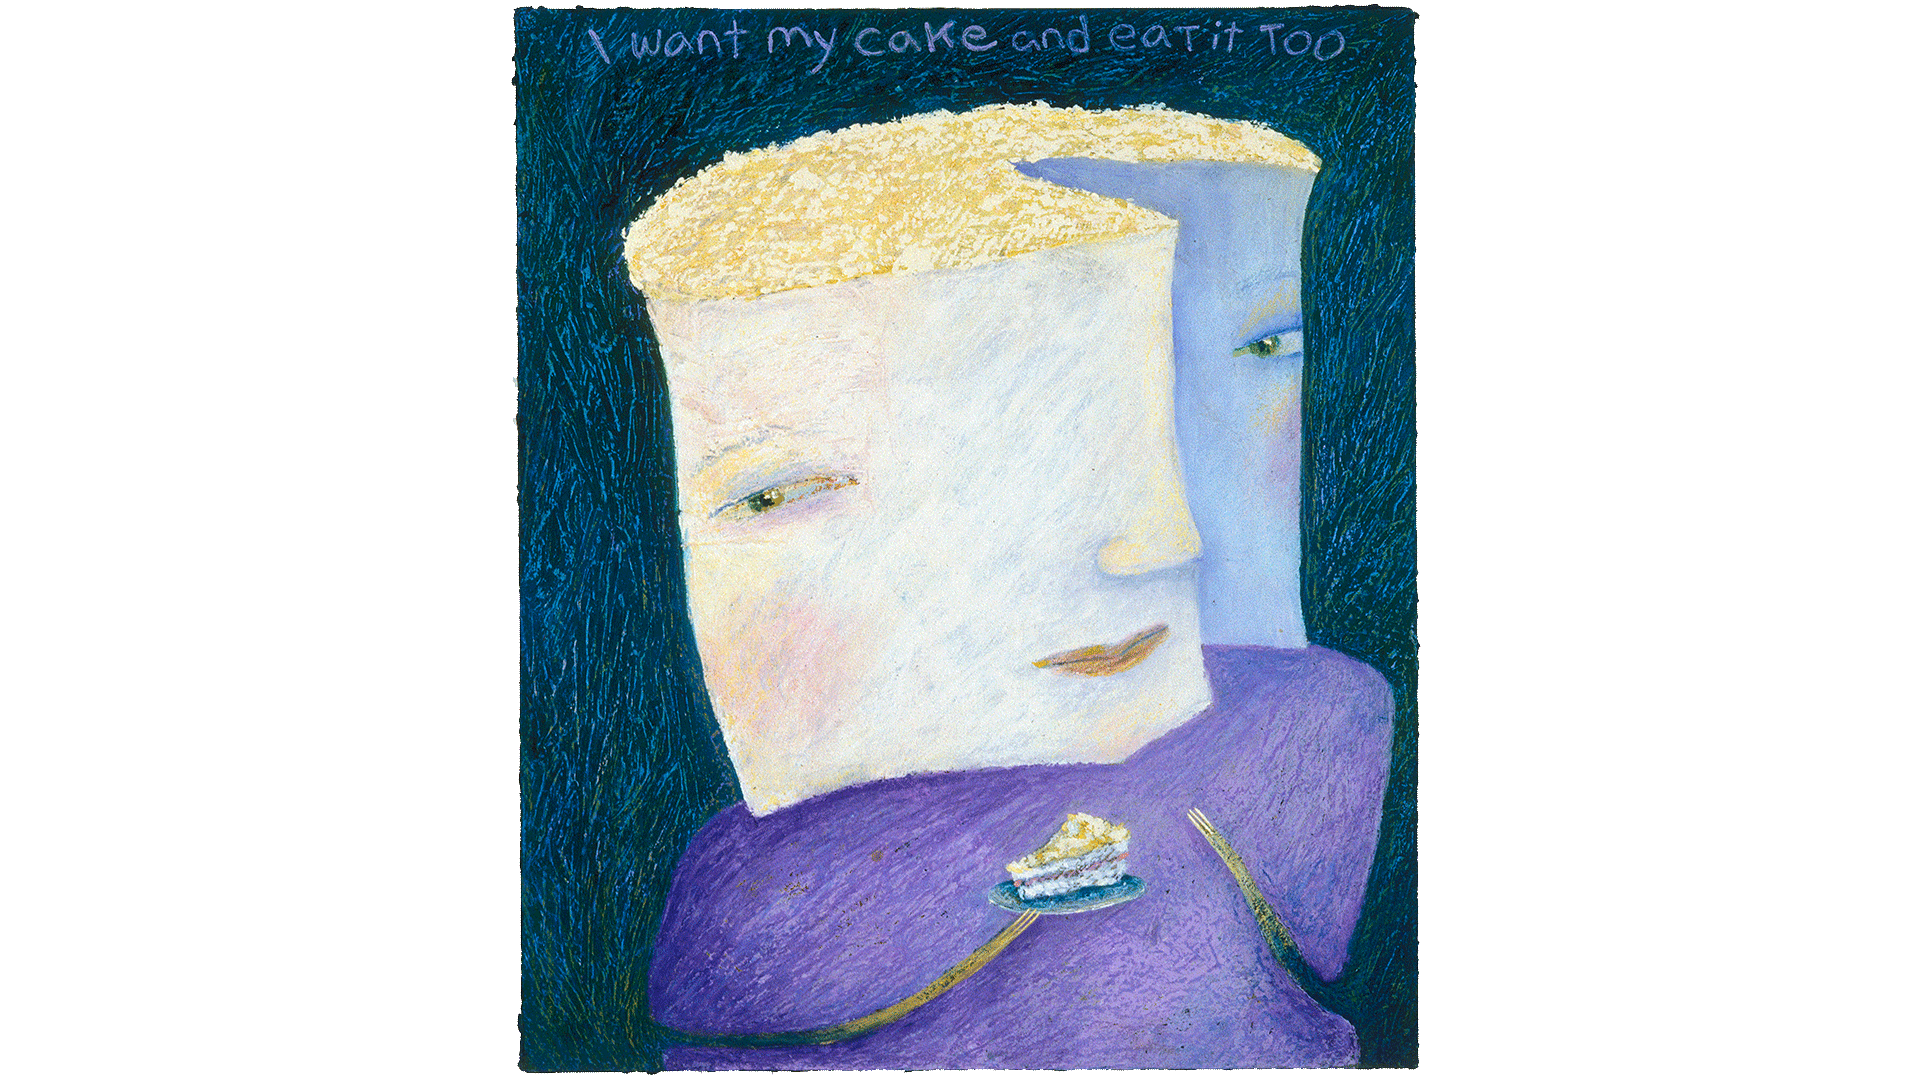 virginiahalstead.com/Paintings/I-want-my-cake-and-eat-it-too.png